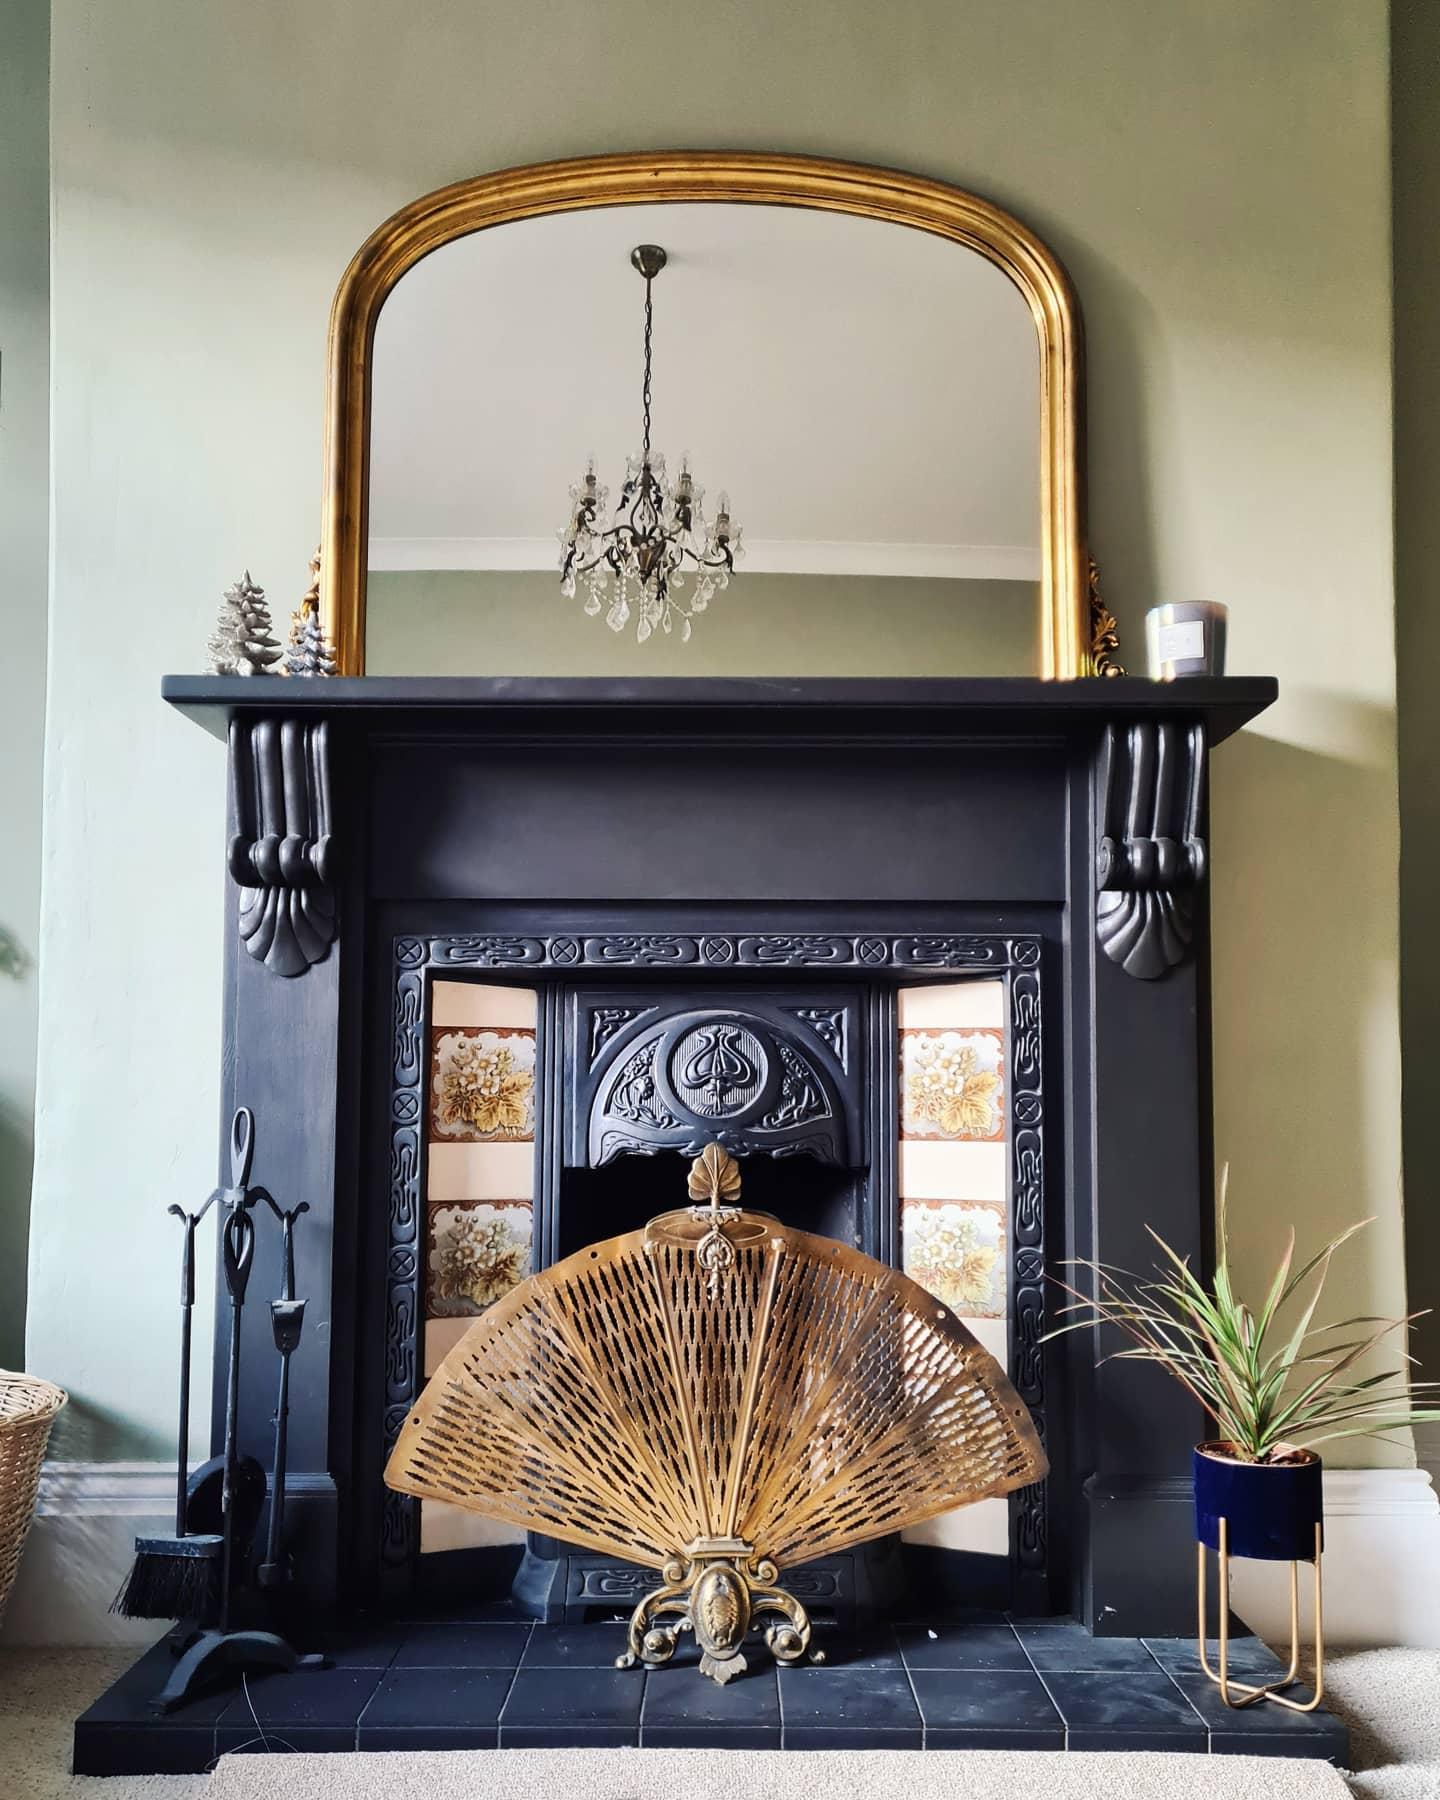 Rustic Fireplace Mantel Ideas -thelittlewhitehouseonthecorner